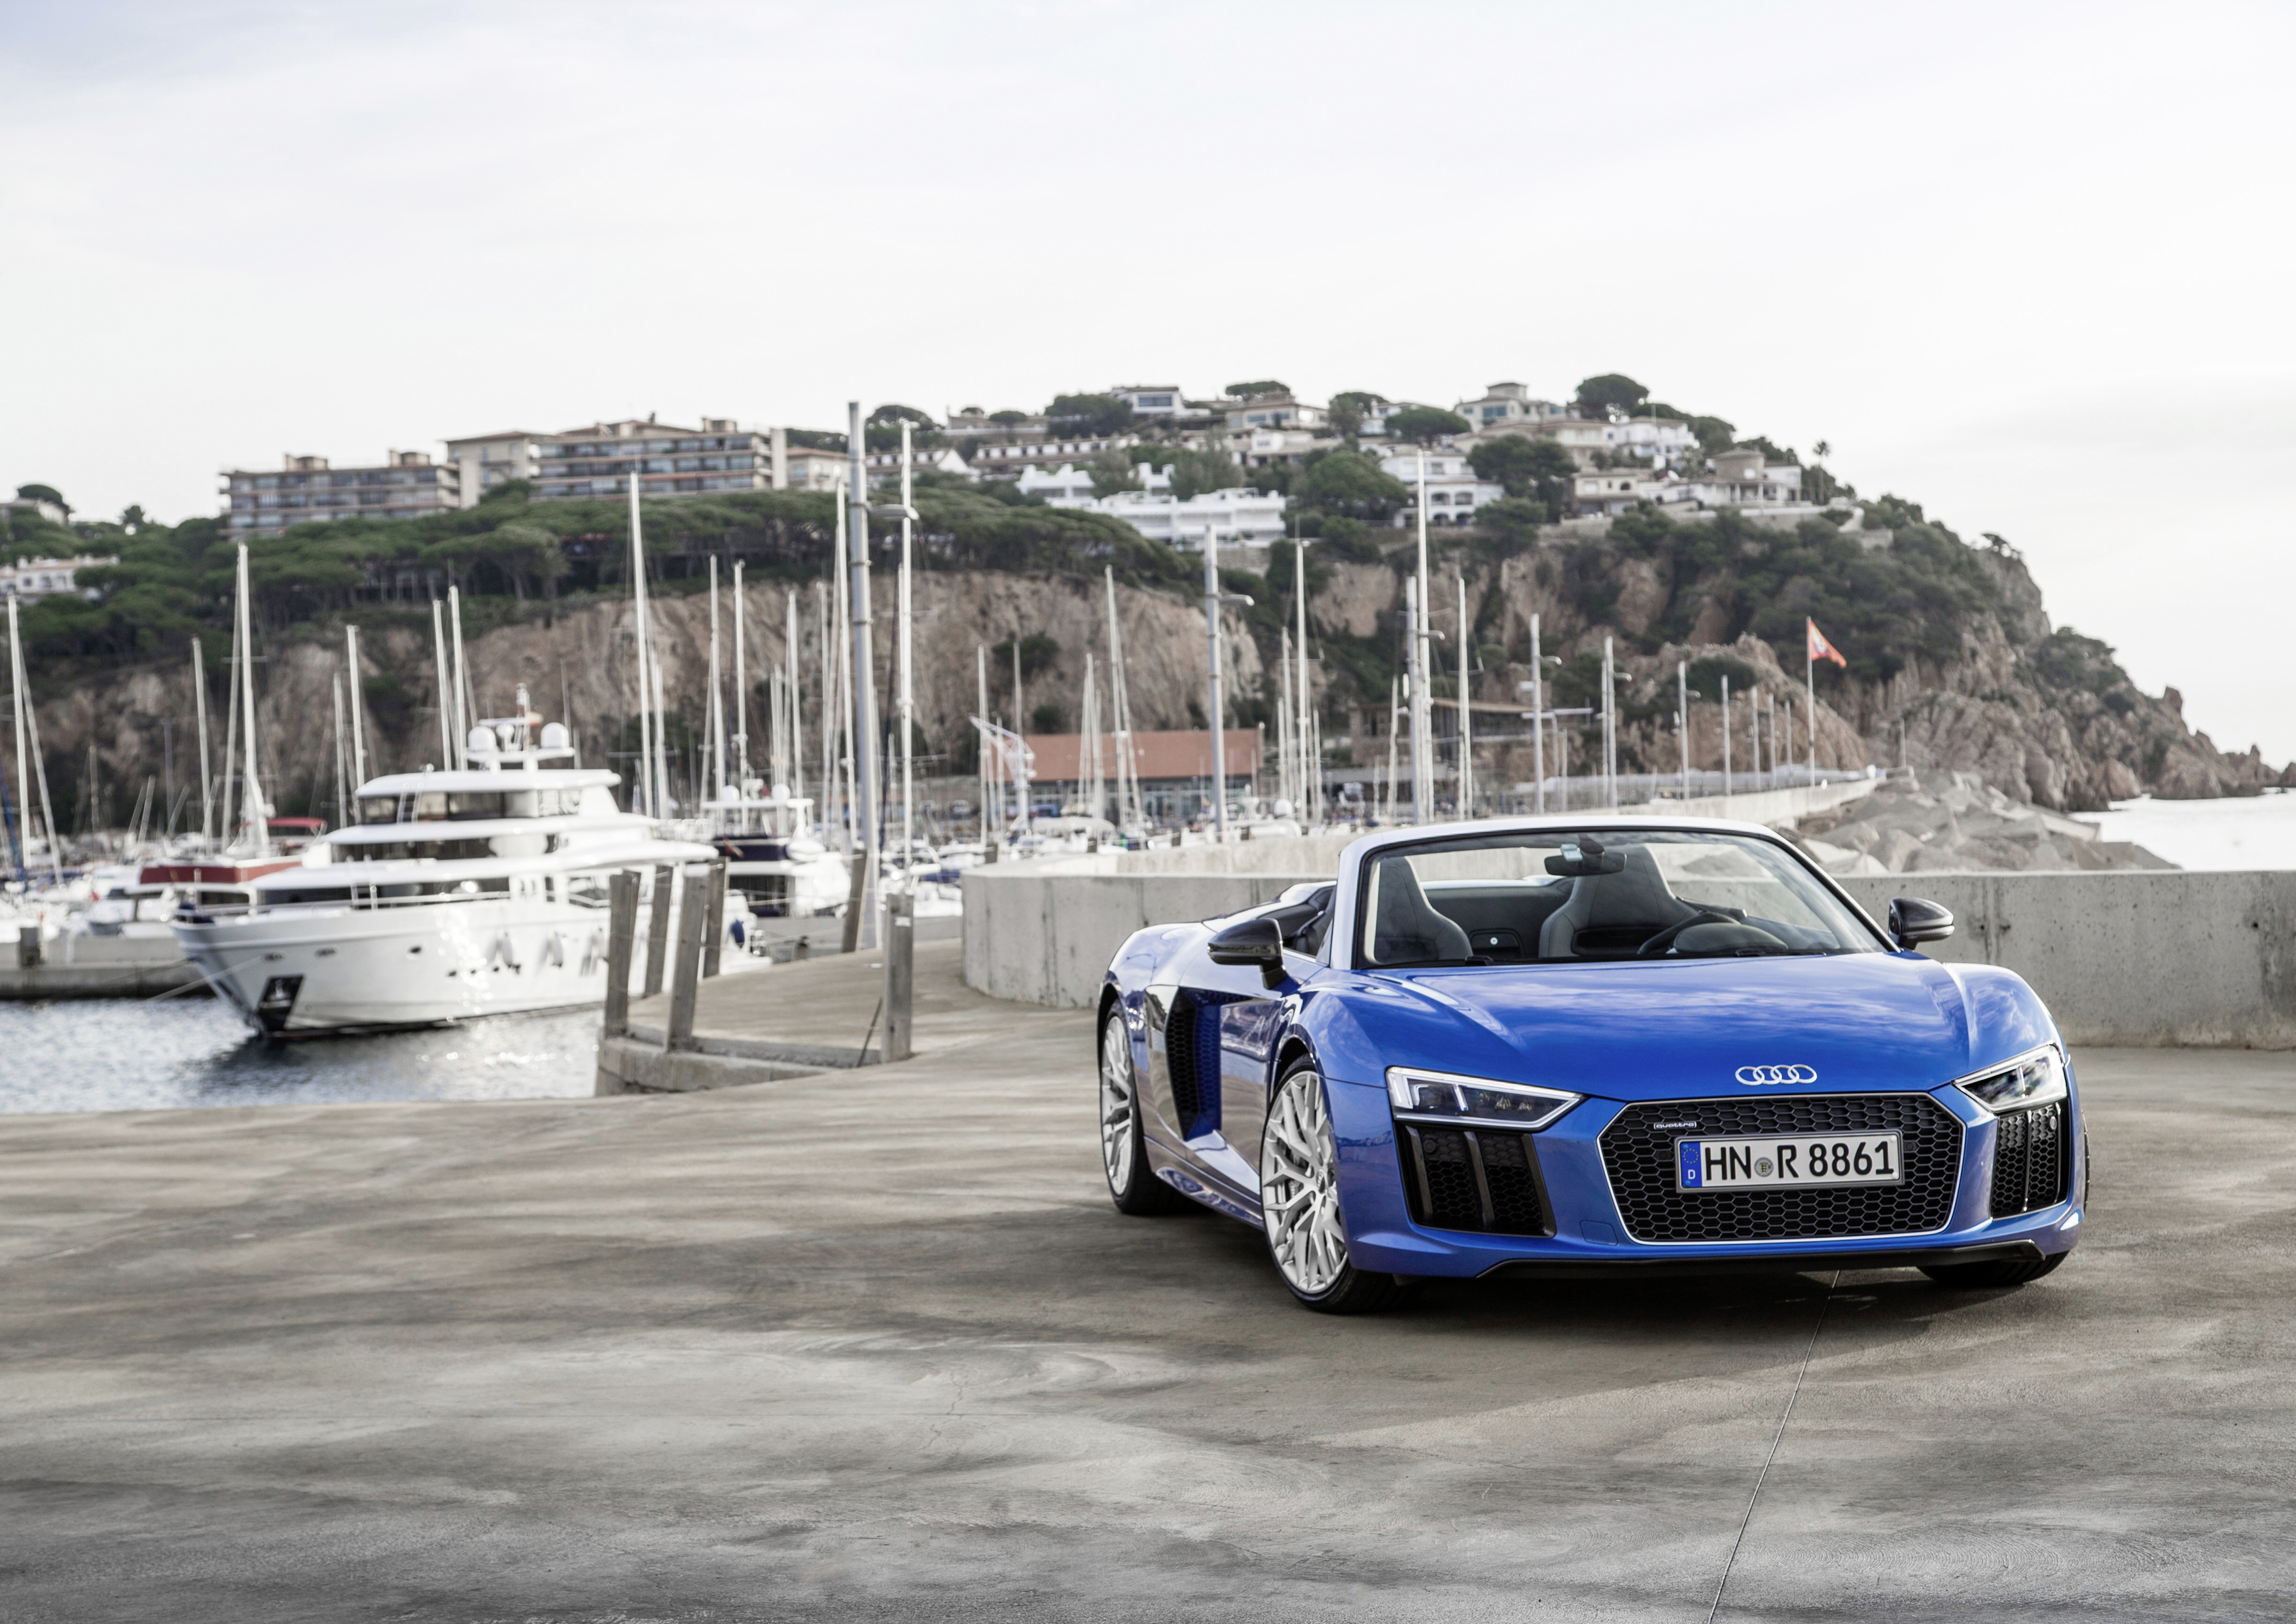 Review: the Audi R8 Spyder is a chiselled dream to drive down open roads